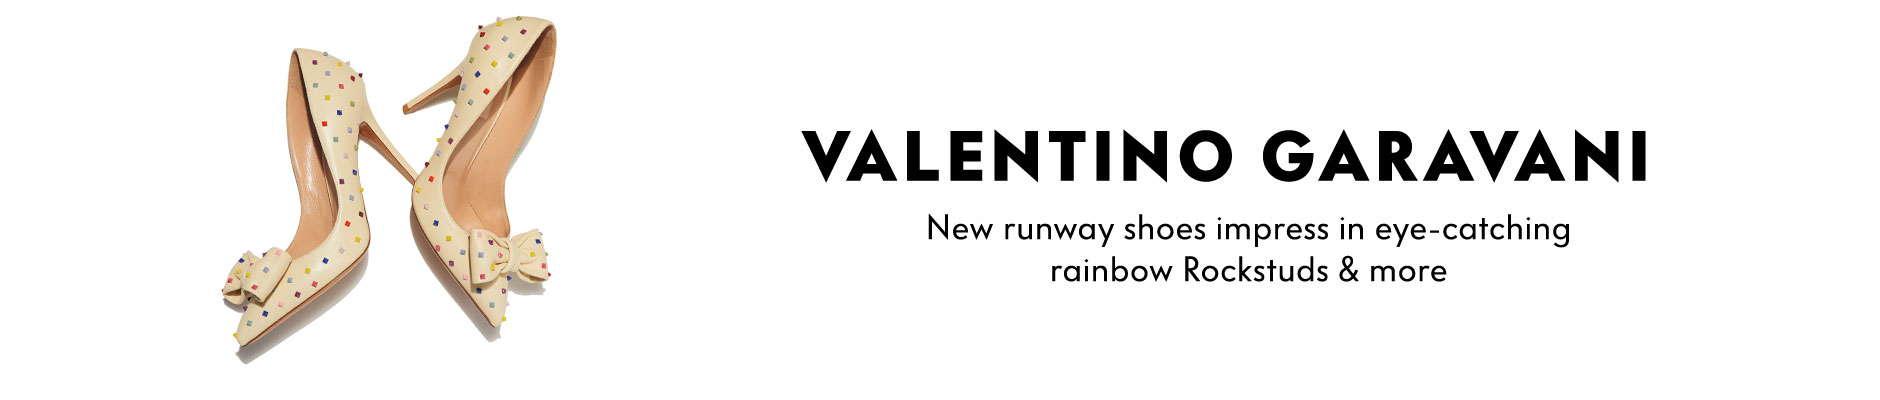 Valentino Garavani - New runway shoes impress in eye-catching rainbow Rockstuds & more